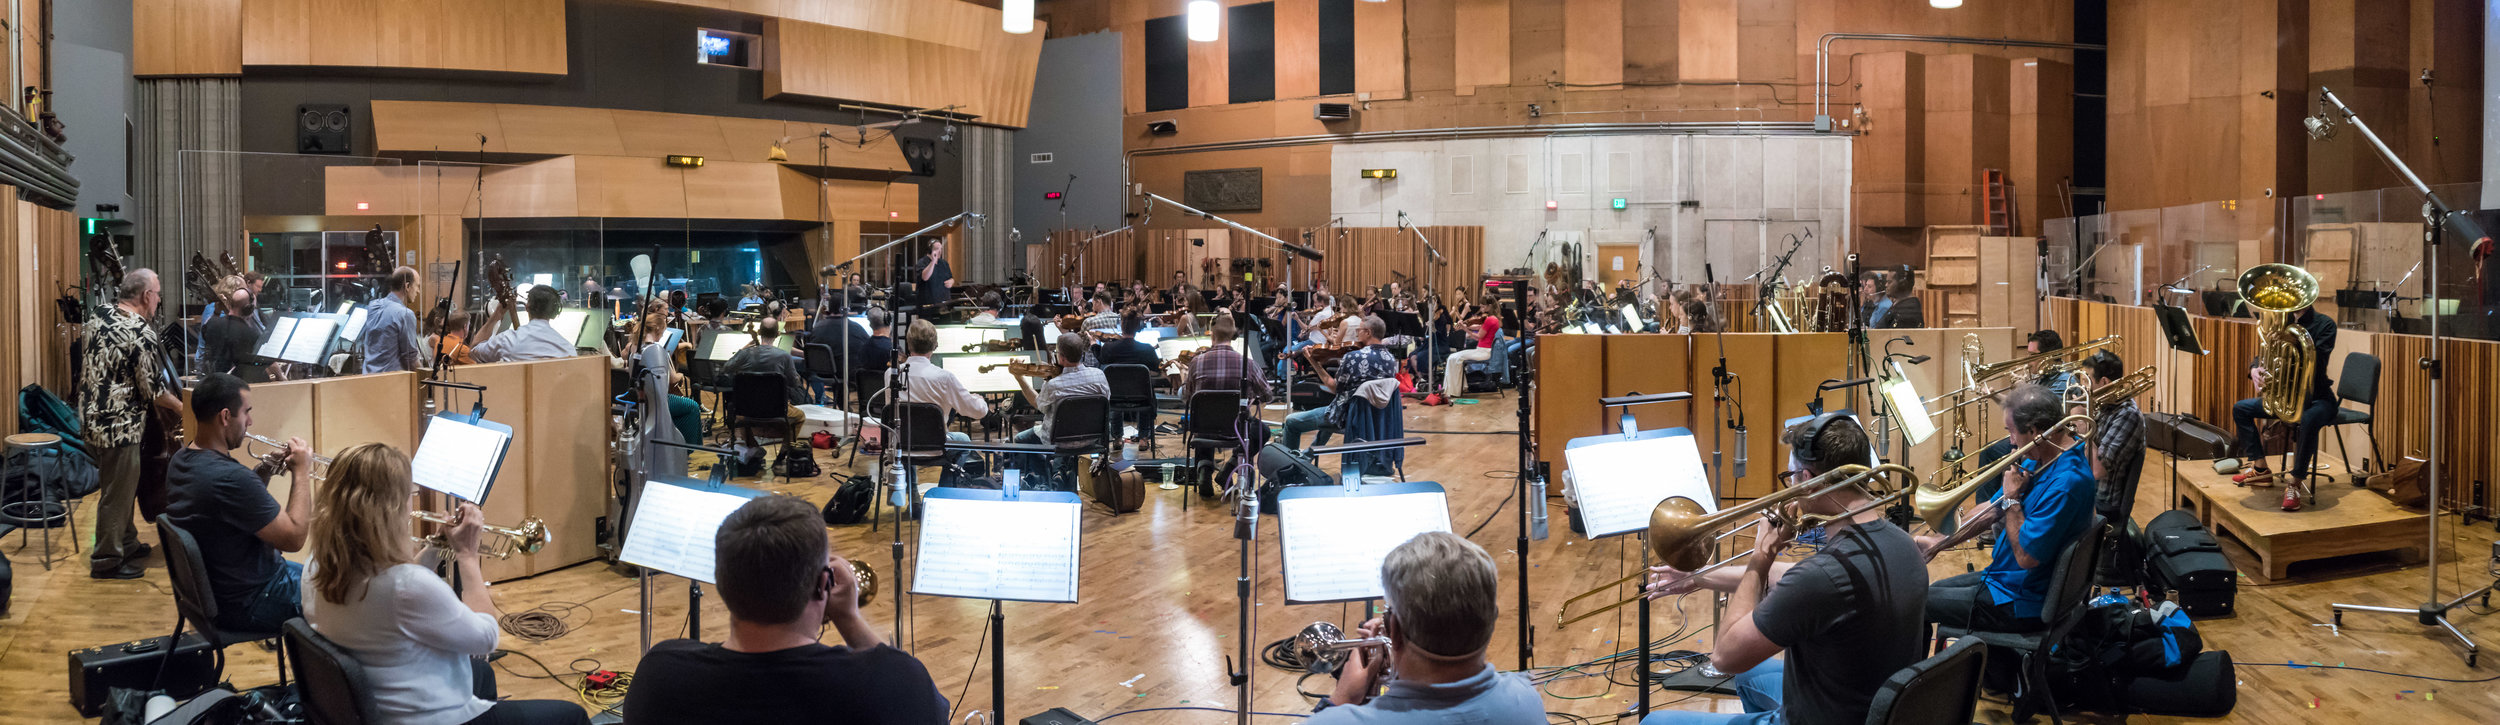 Orchestra session for 'Halo Wars 2'